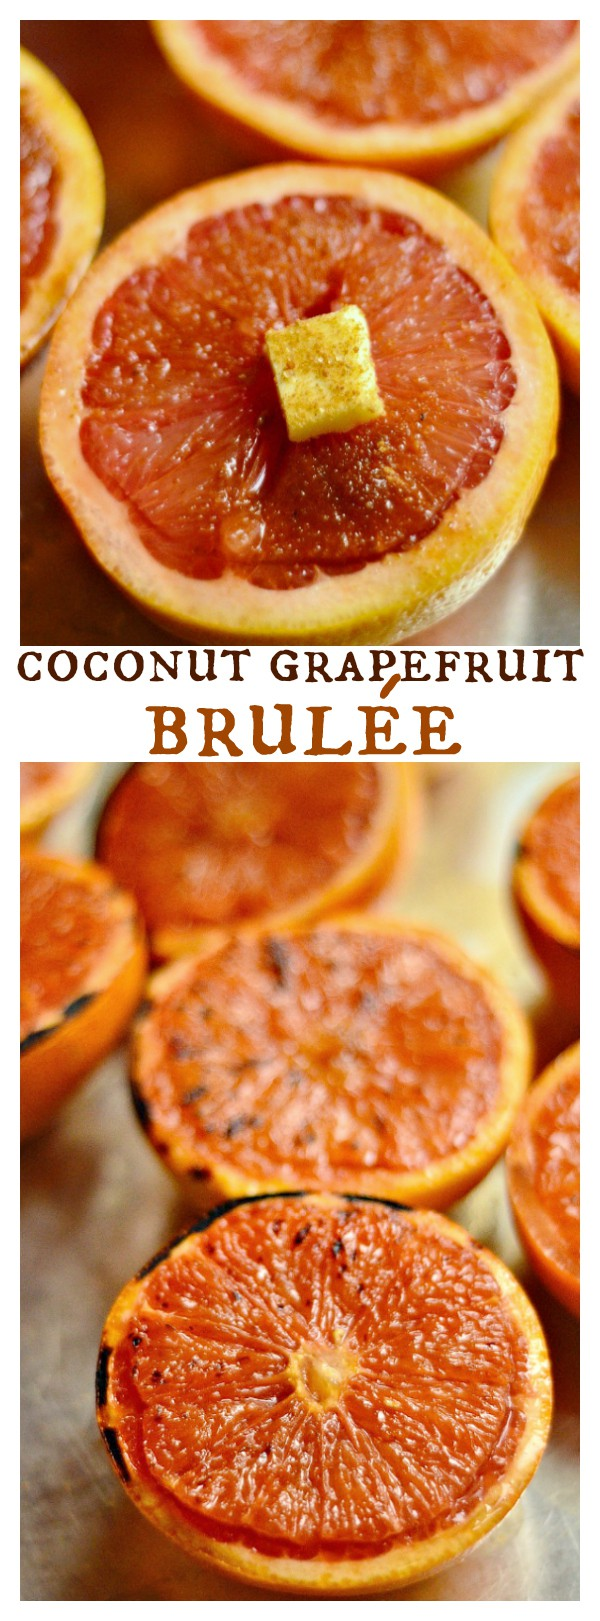 Coconut Grapefruit Brulée for Easter Brunch or a springtime gathering